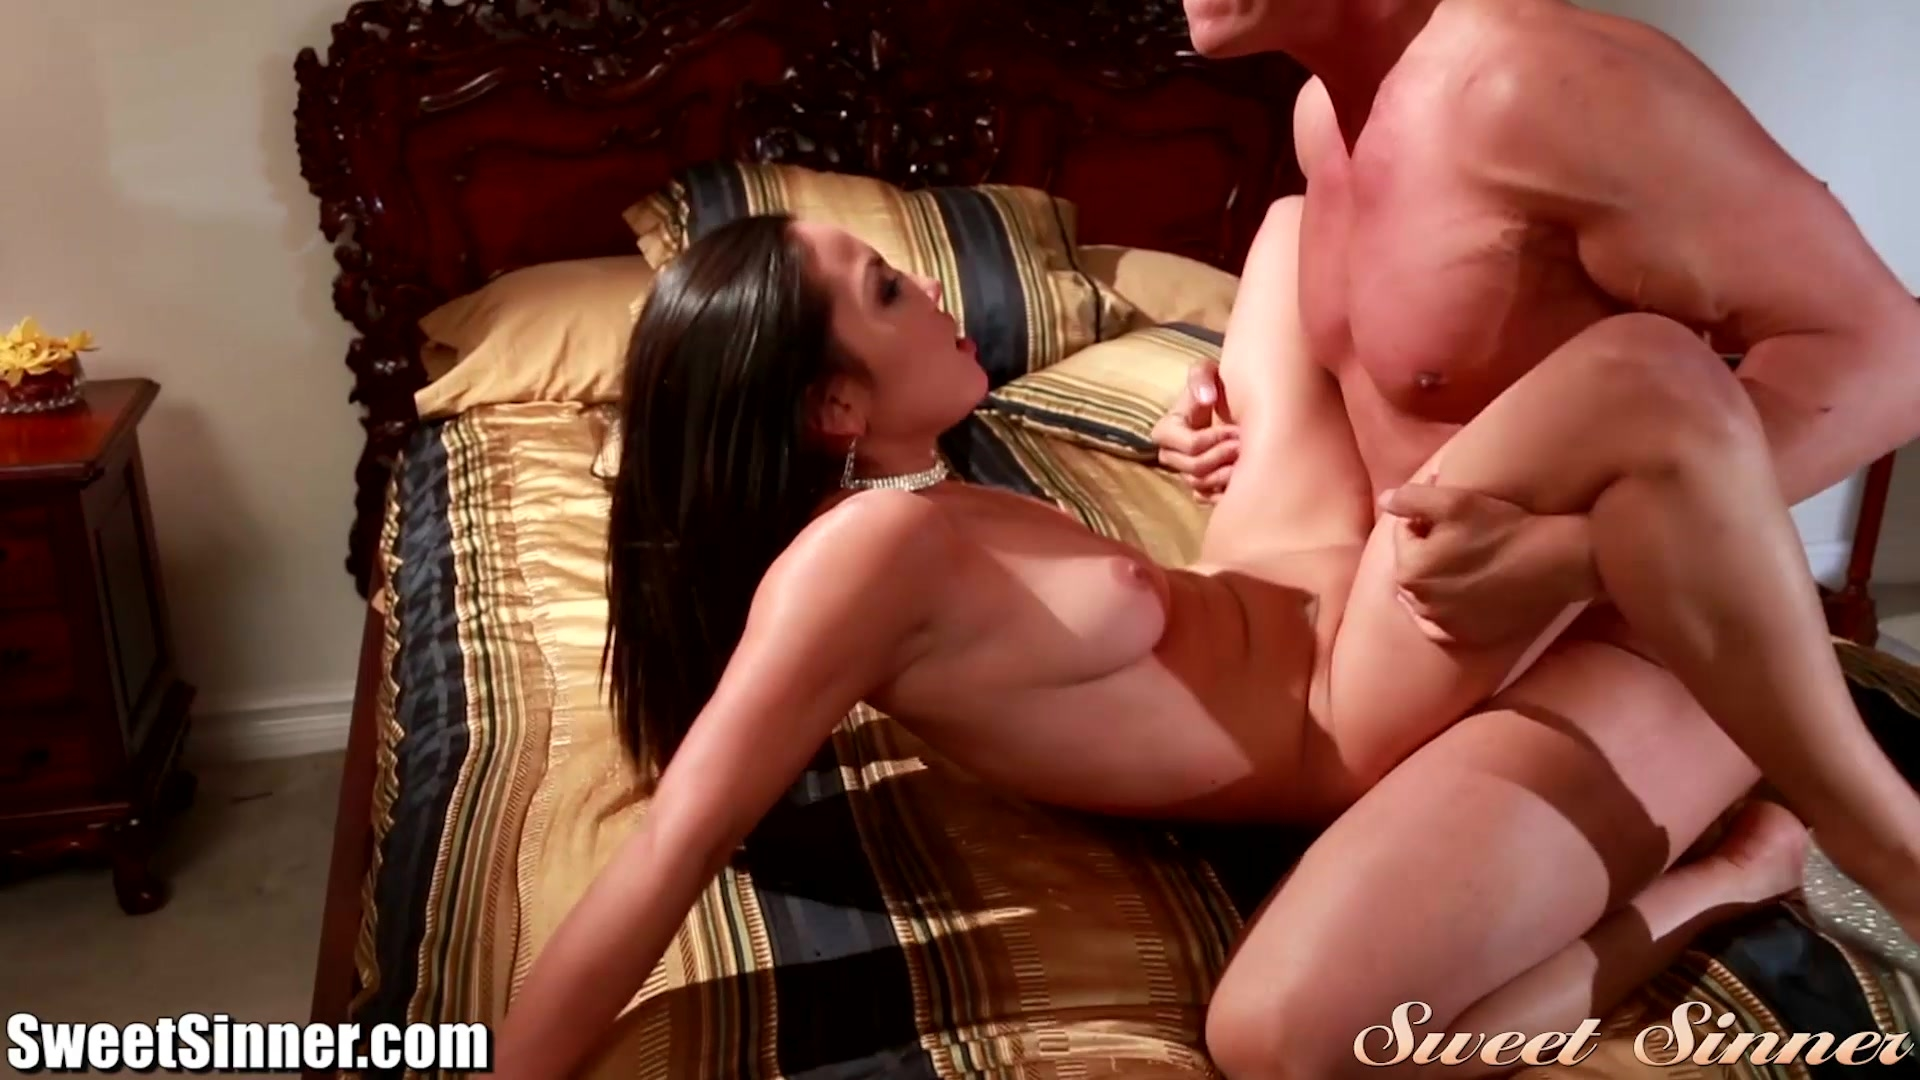 Passionate fucking with exquisite skinny sandy 10